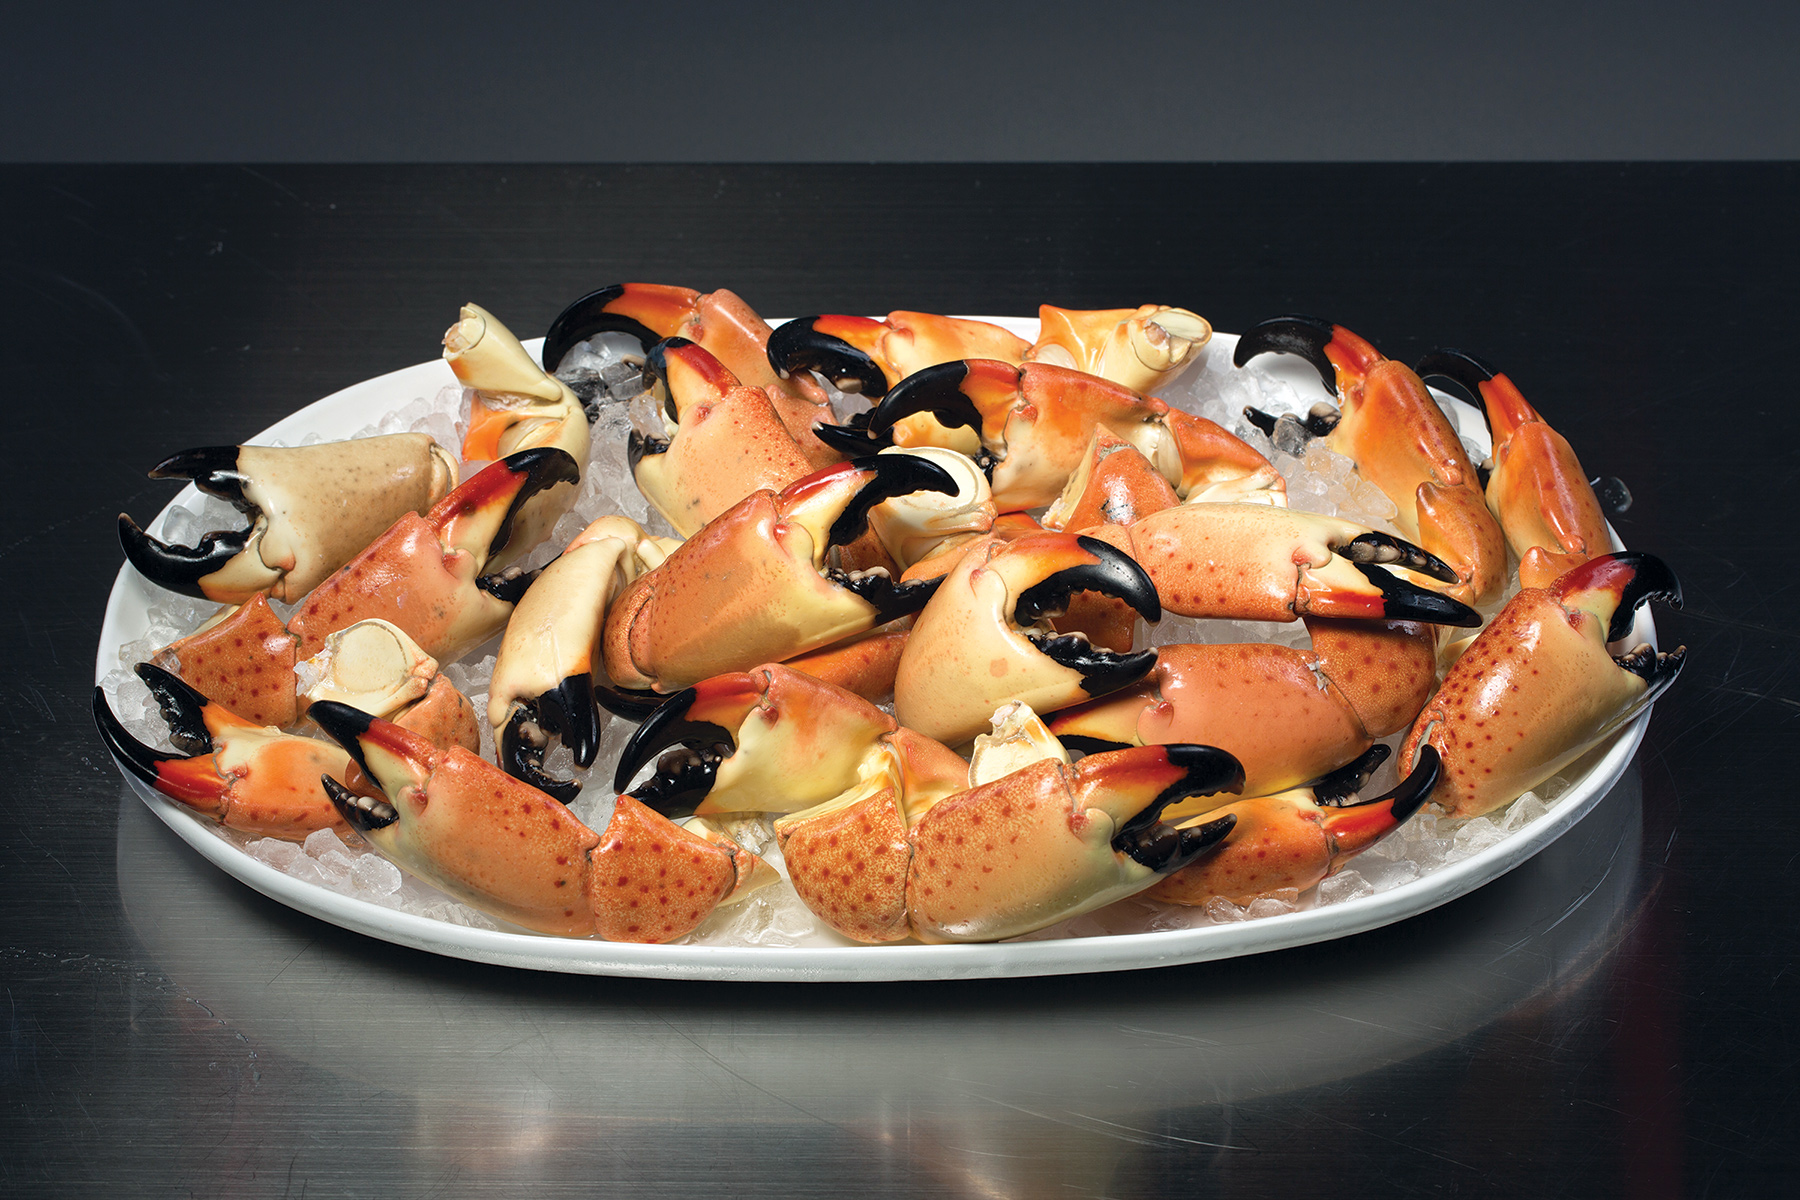 A very large platter of Fresh Florida Stone Crab Claws on ice